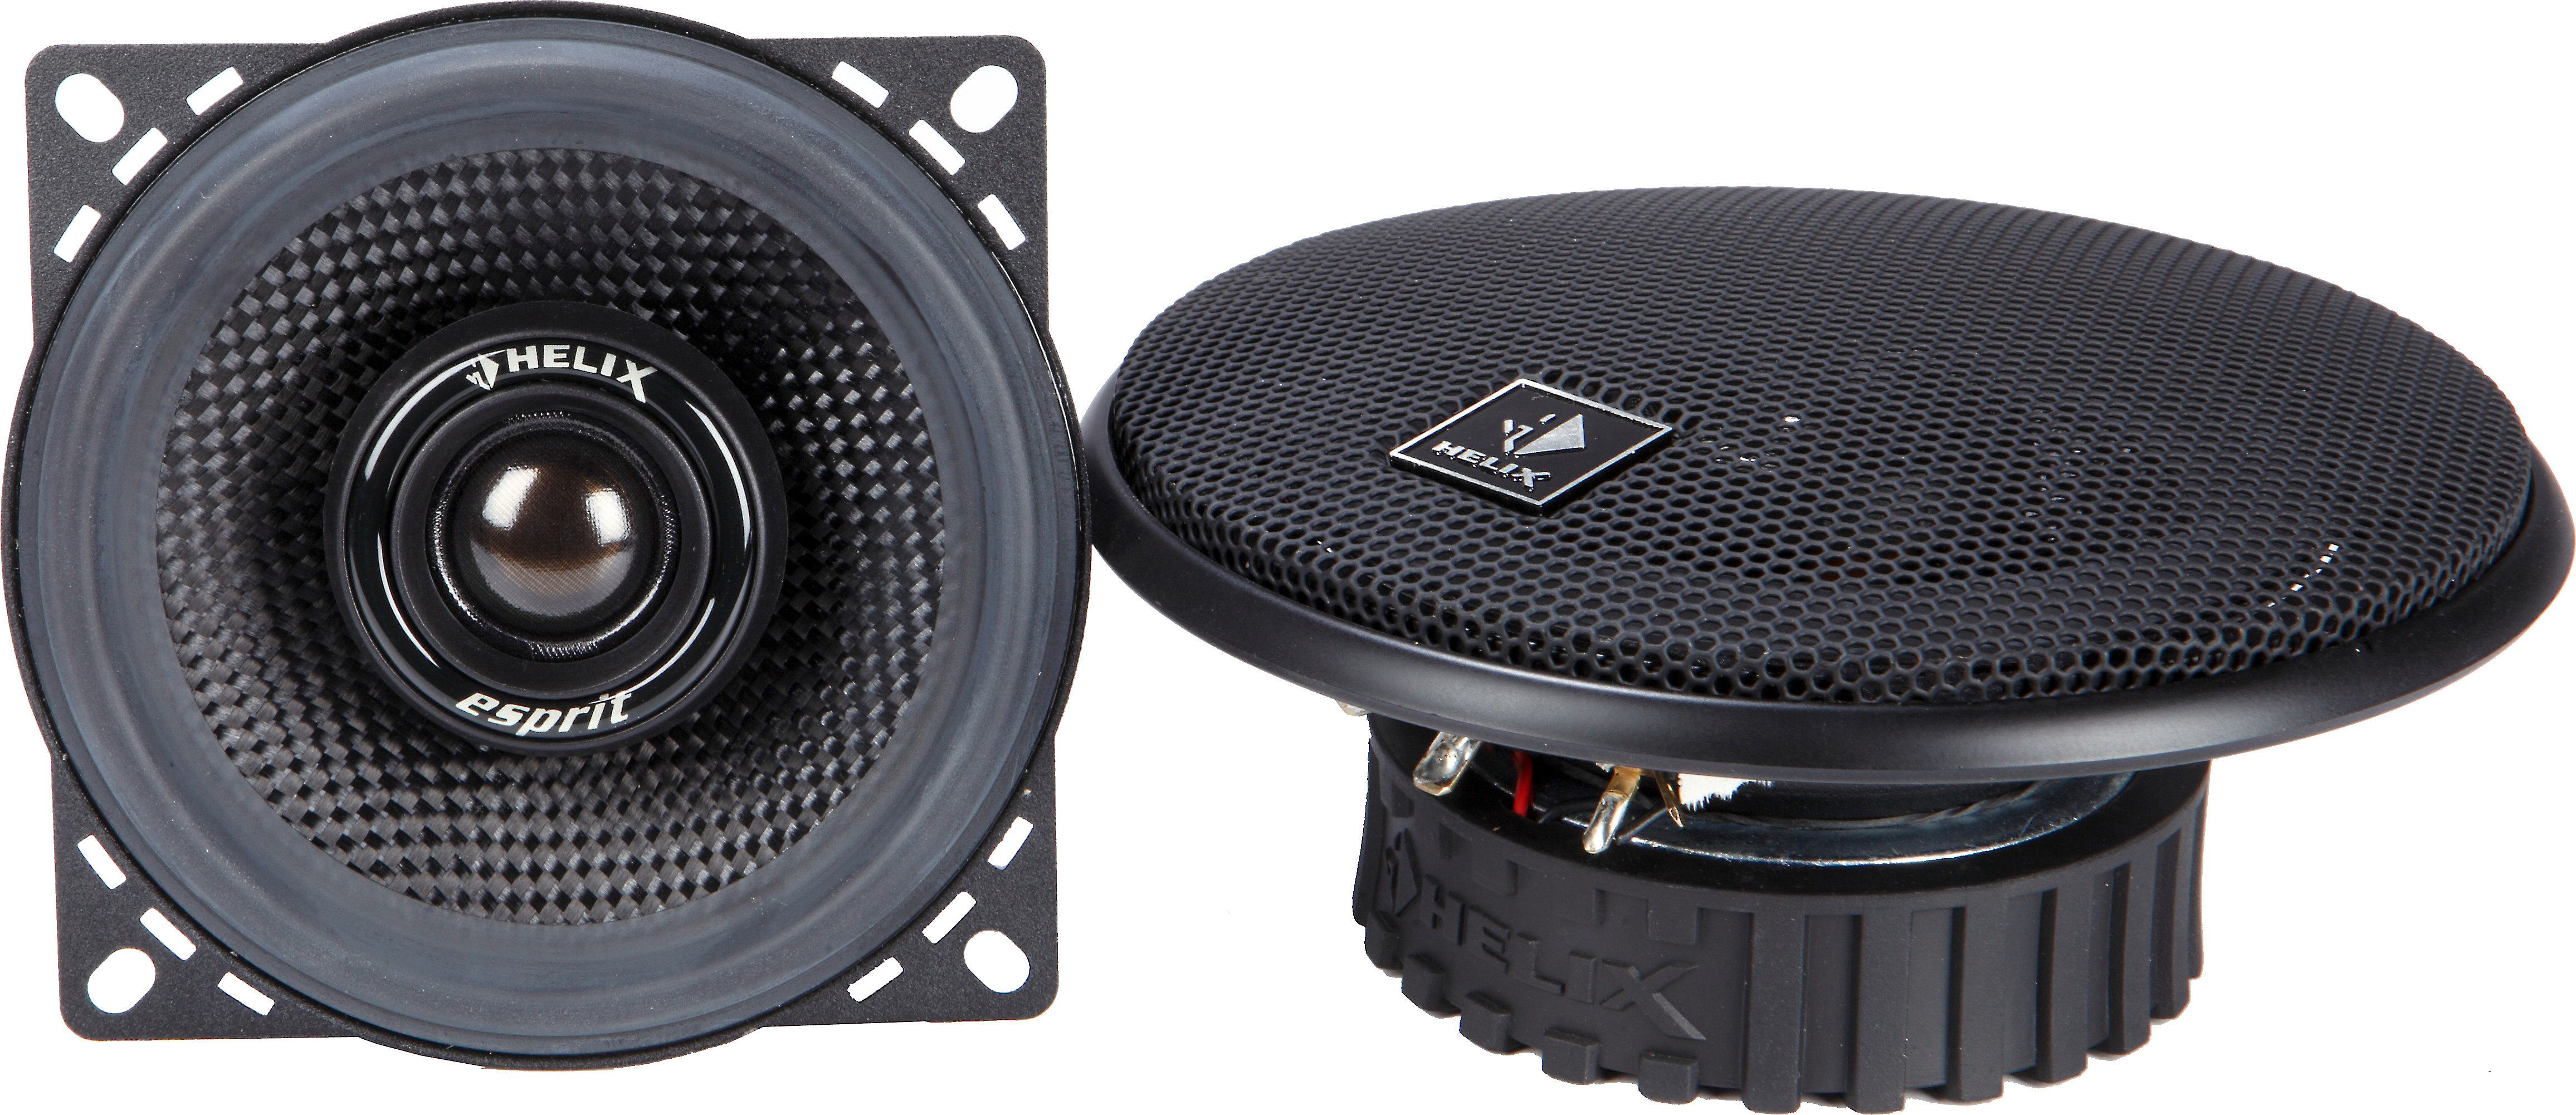 """2 HELIX 4/"""" SPEAKER COAXIAL COMPONENT PROTECTIVE GRILLS COVERS 1 PAIR"""